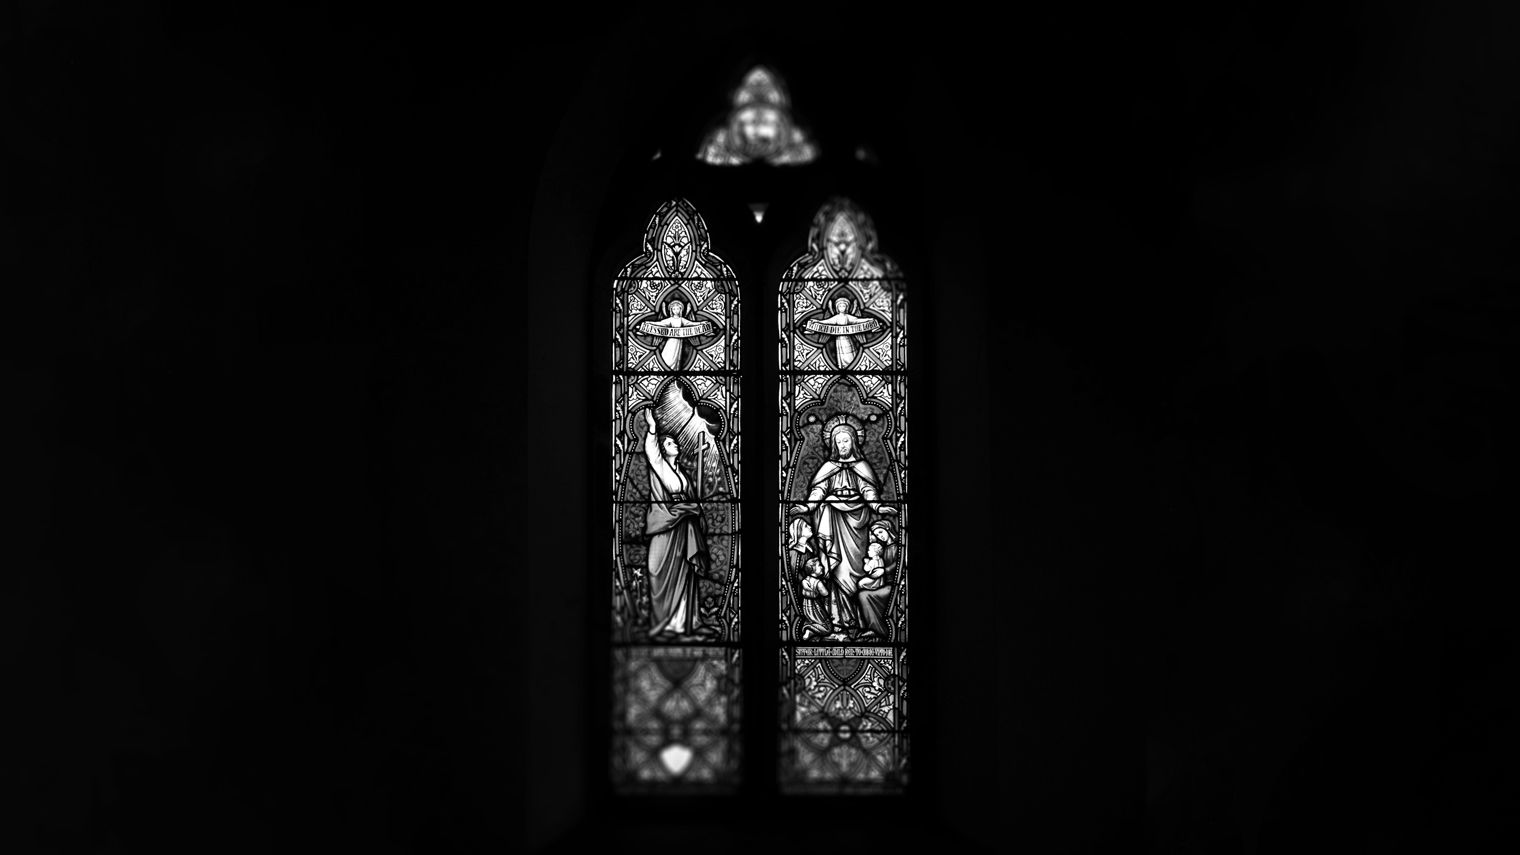 A stained glass window lit from behind, surrounded by darkness.